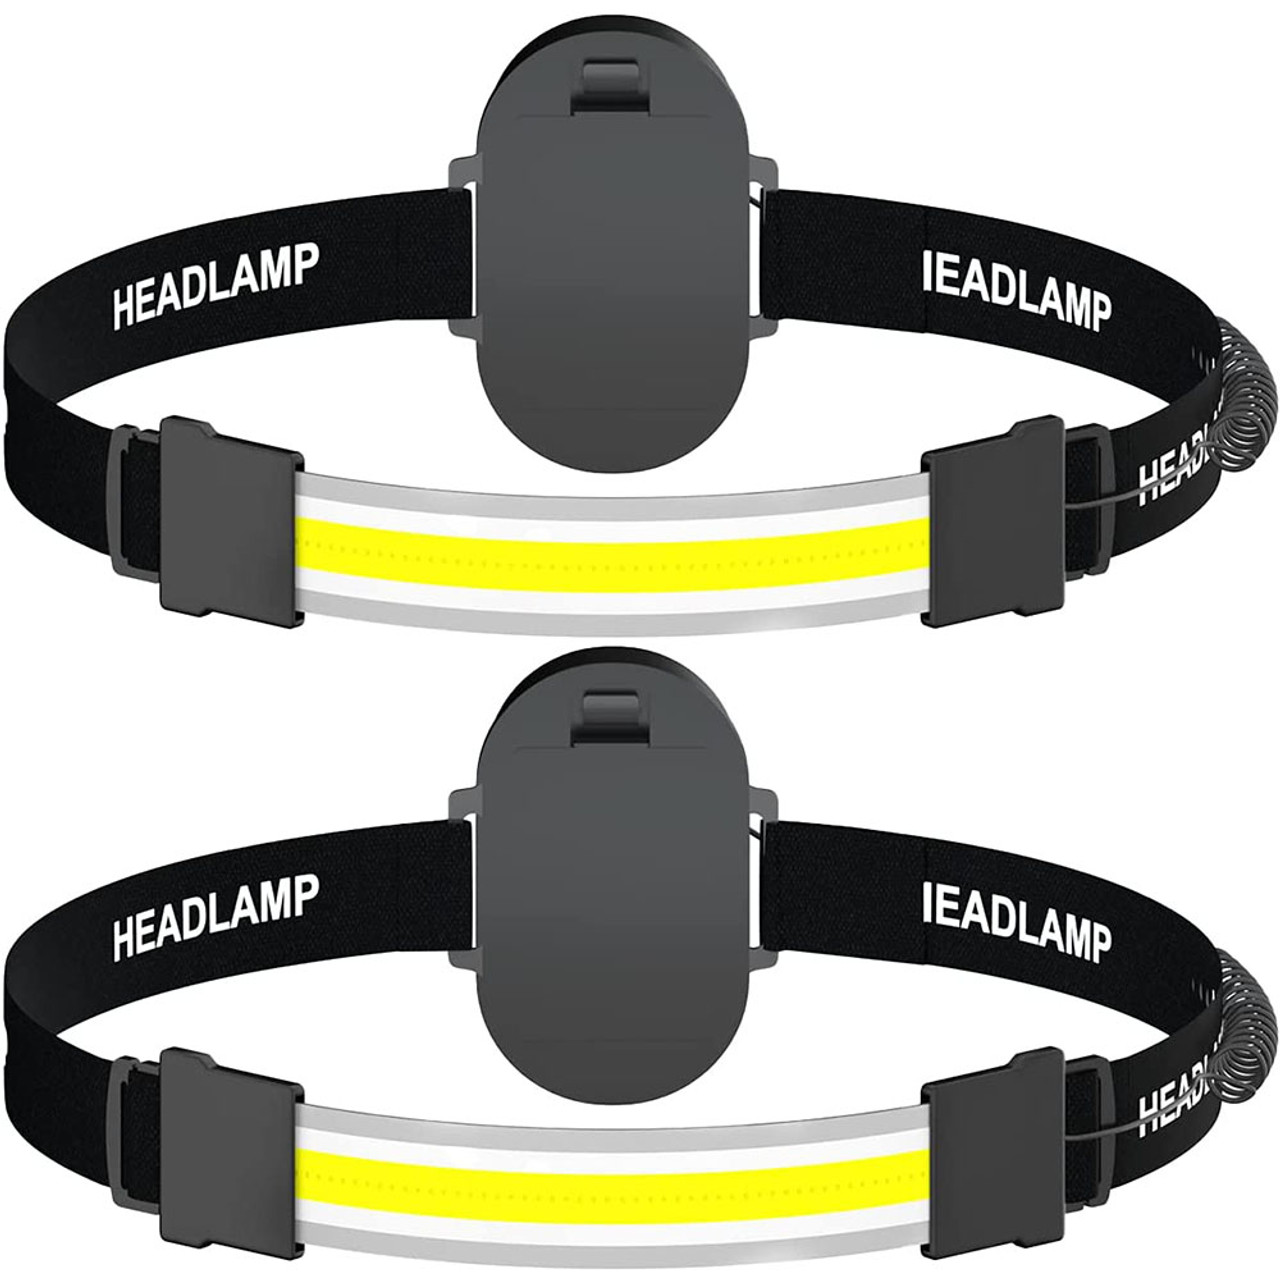 Battery-Powered Wide Beam Bright LED Headlamp (2-Pack)! .99 (REG .99) + Free Shipping at Until Gone!